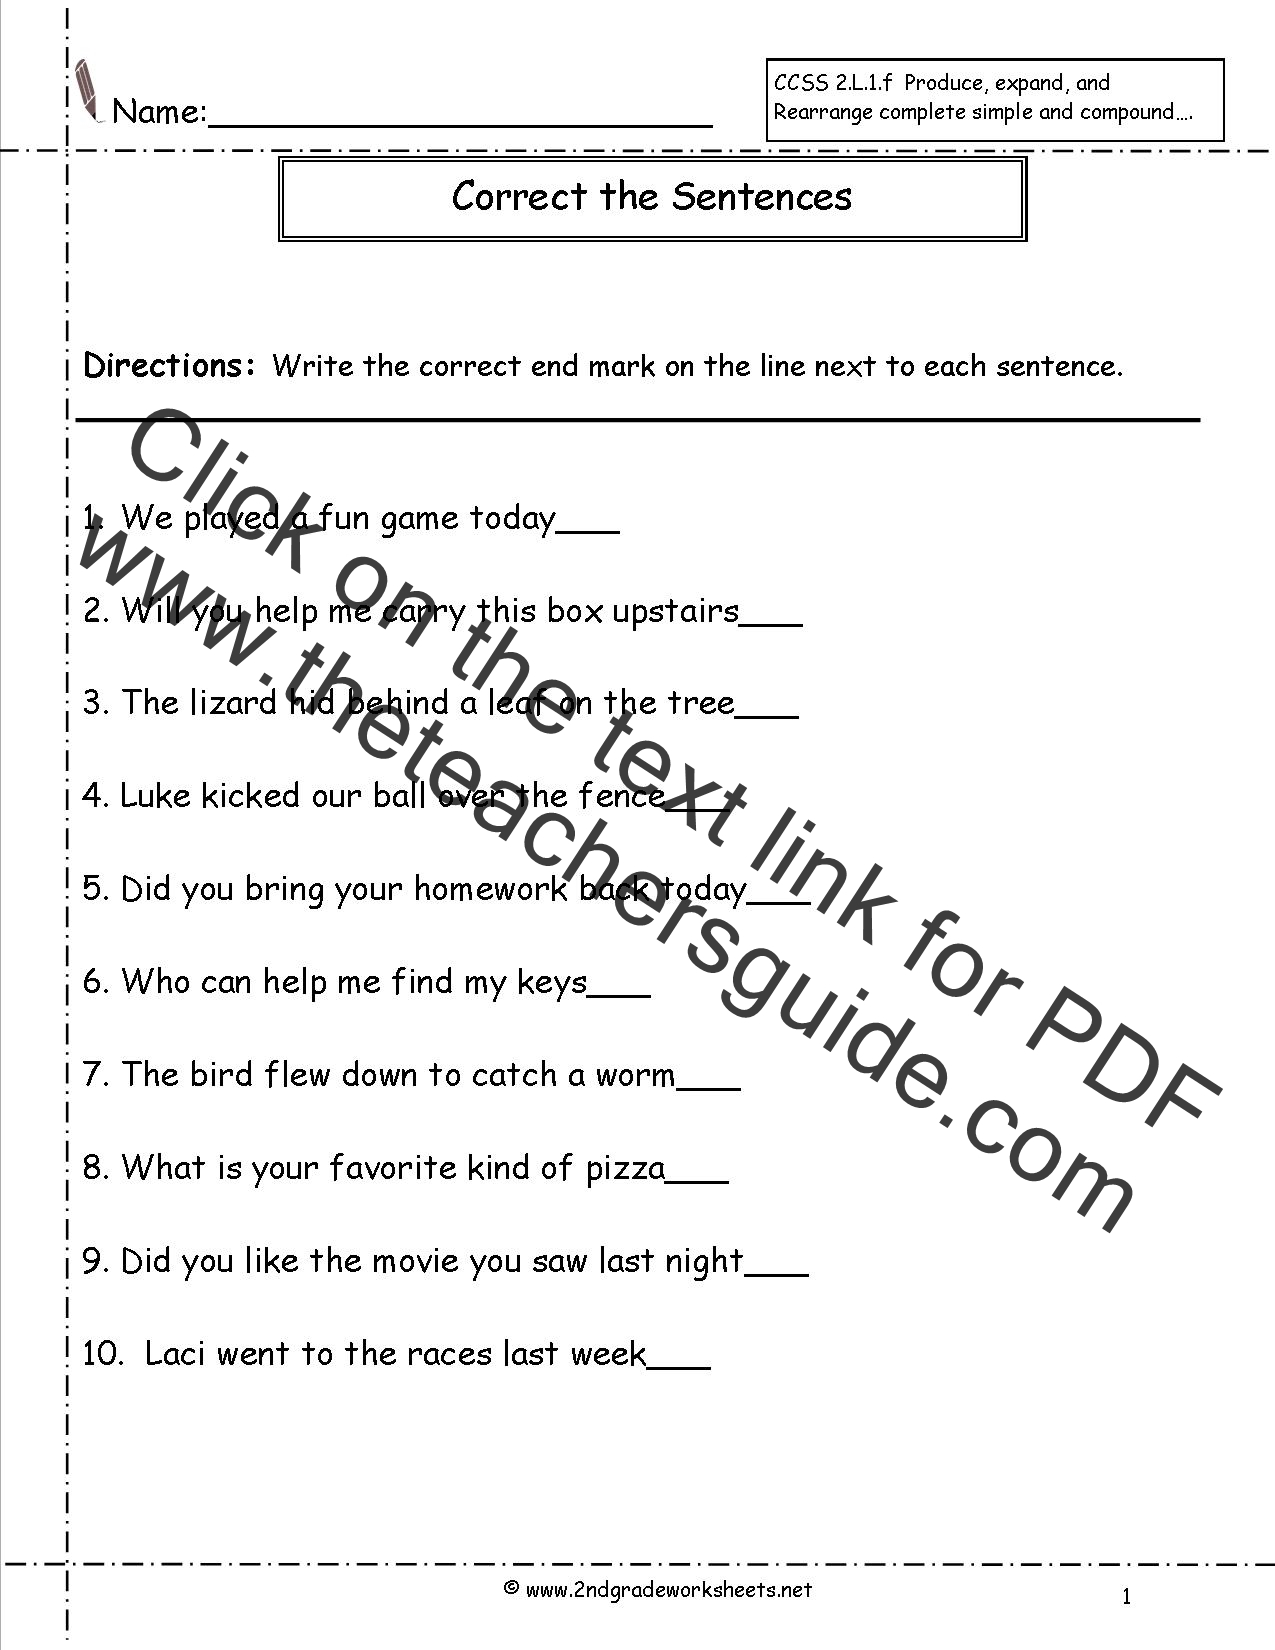 Worksheets 7th Grade Writing Worksheets common core language arts school on wheels week 6